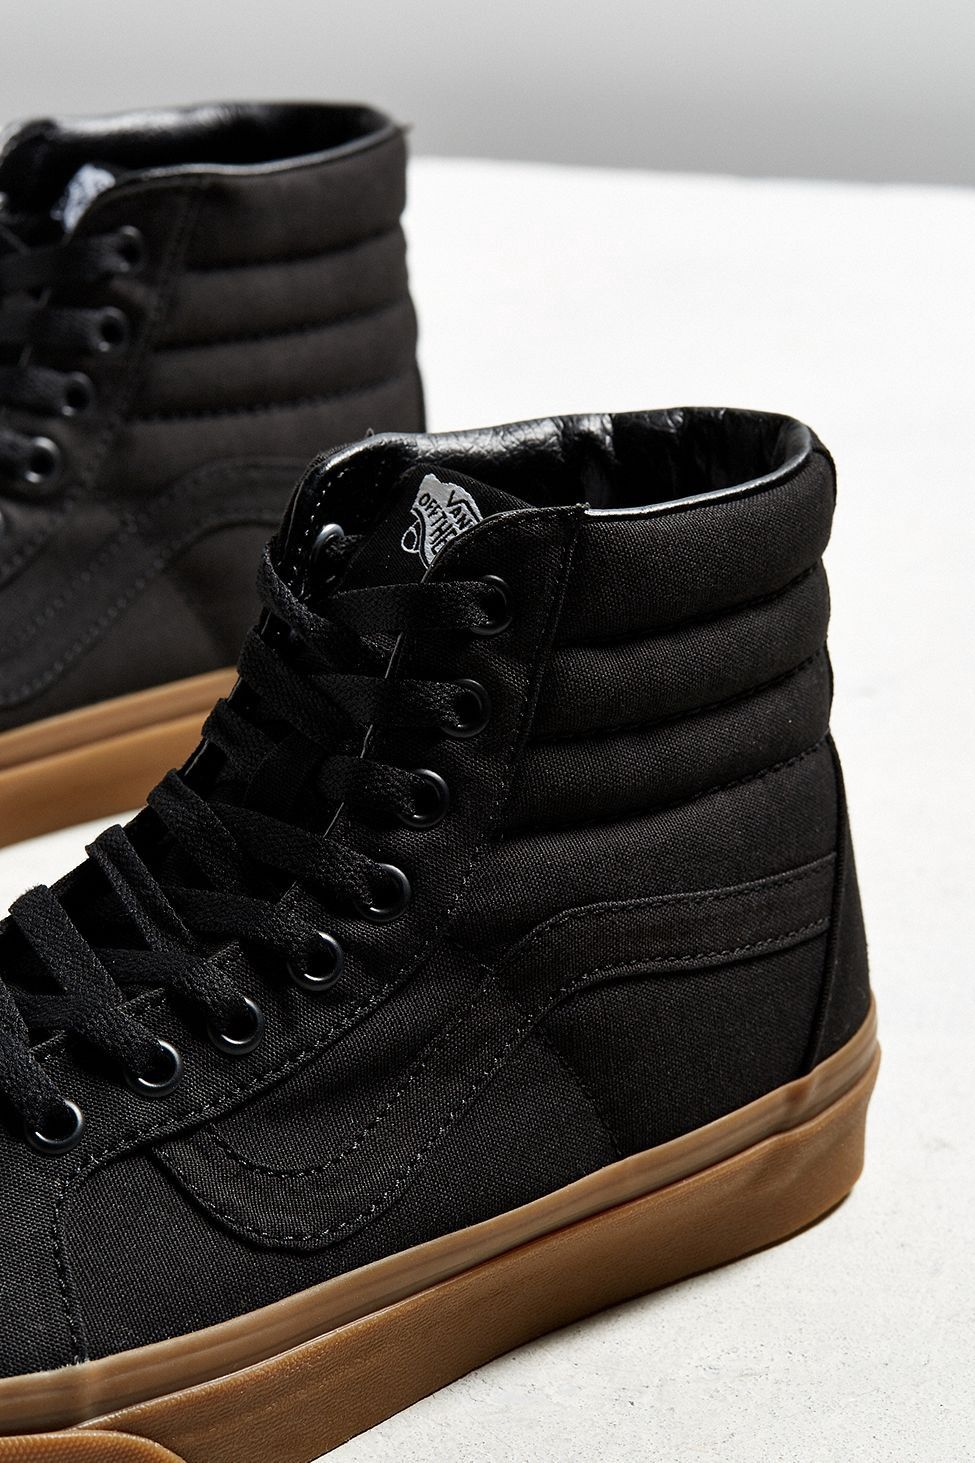 8c62ed4293bc61 Urban Outfitters Vans Sk8-Hi Reissue Gum Sole Sneaker - M 9 W 10.5 One Size